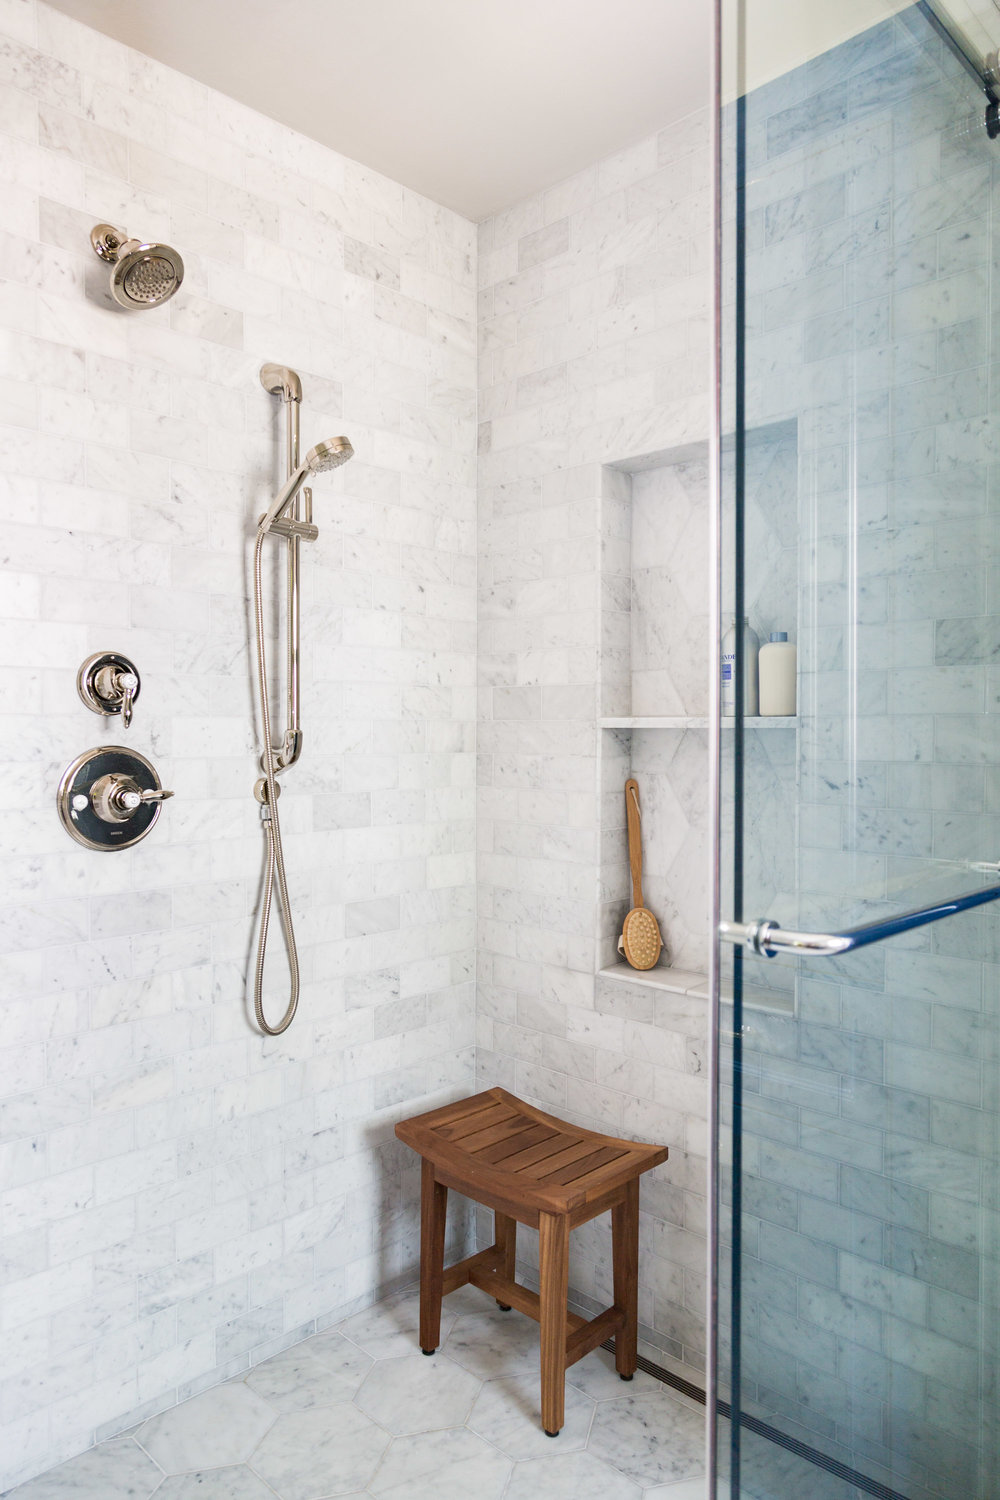 Carrara marble shampoo niche with linear drain in bathroom remodel | Carla Aston, Designer | Tori Aston, Photographer